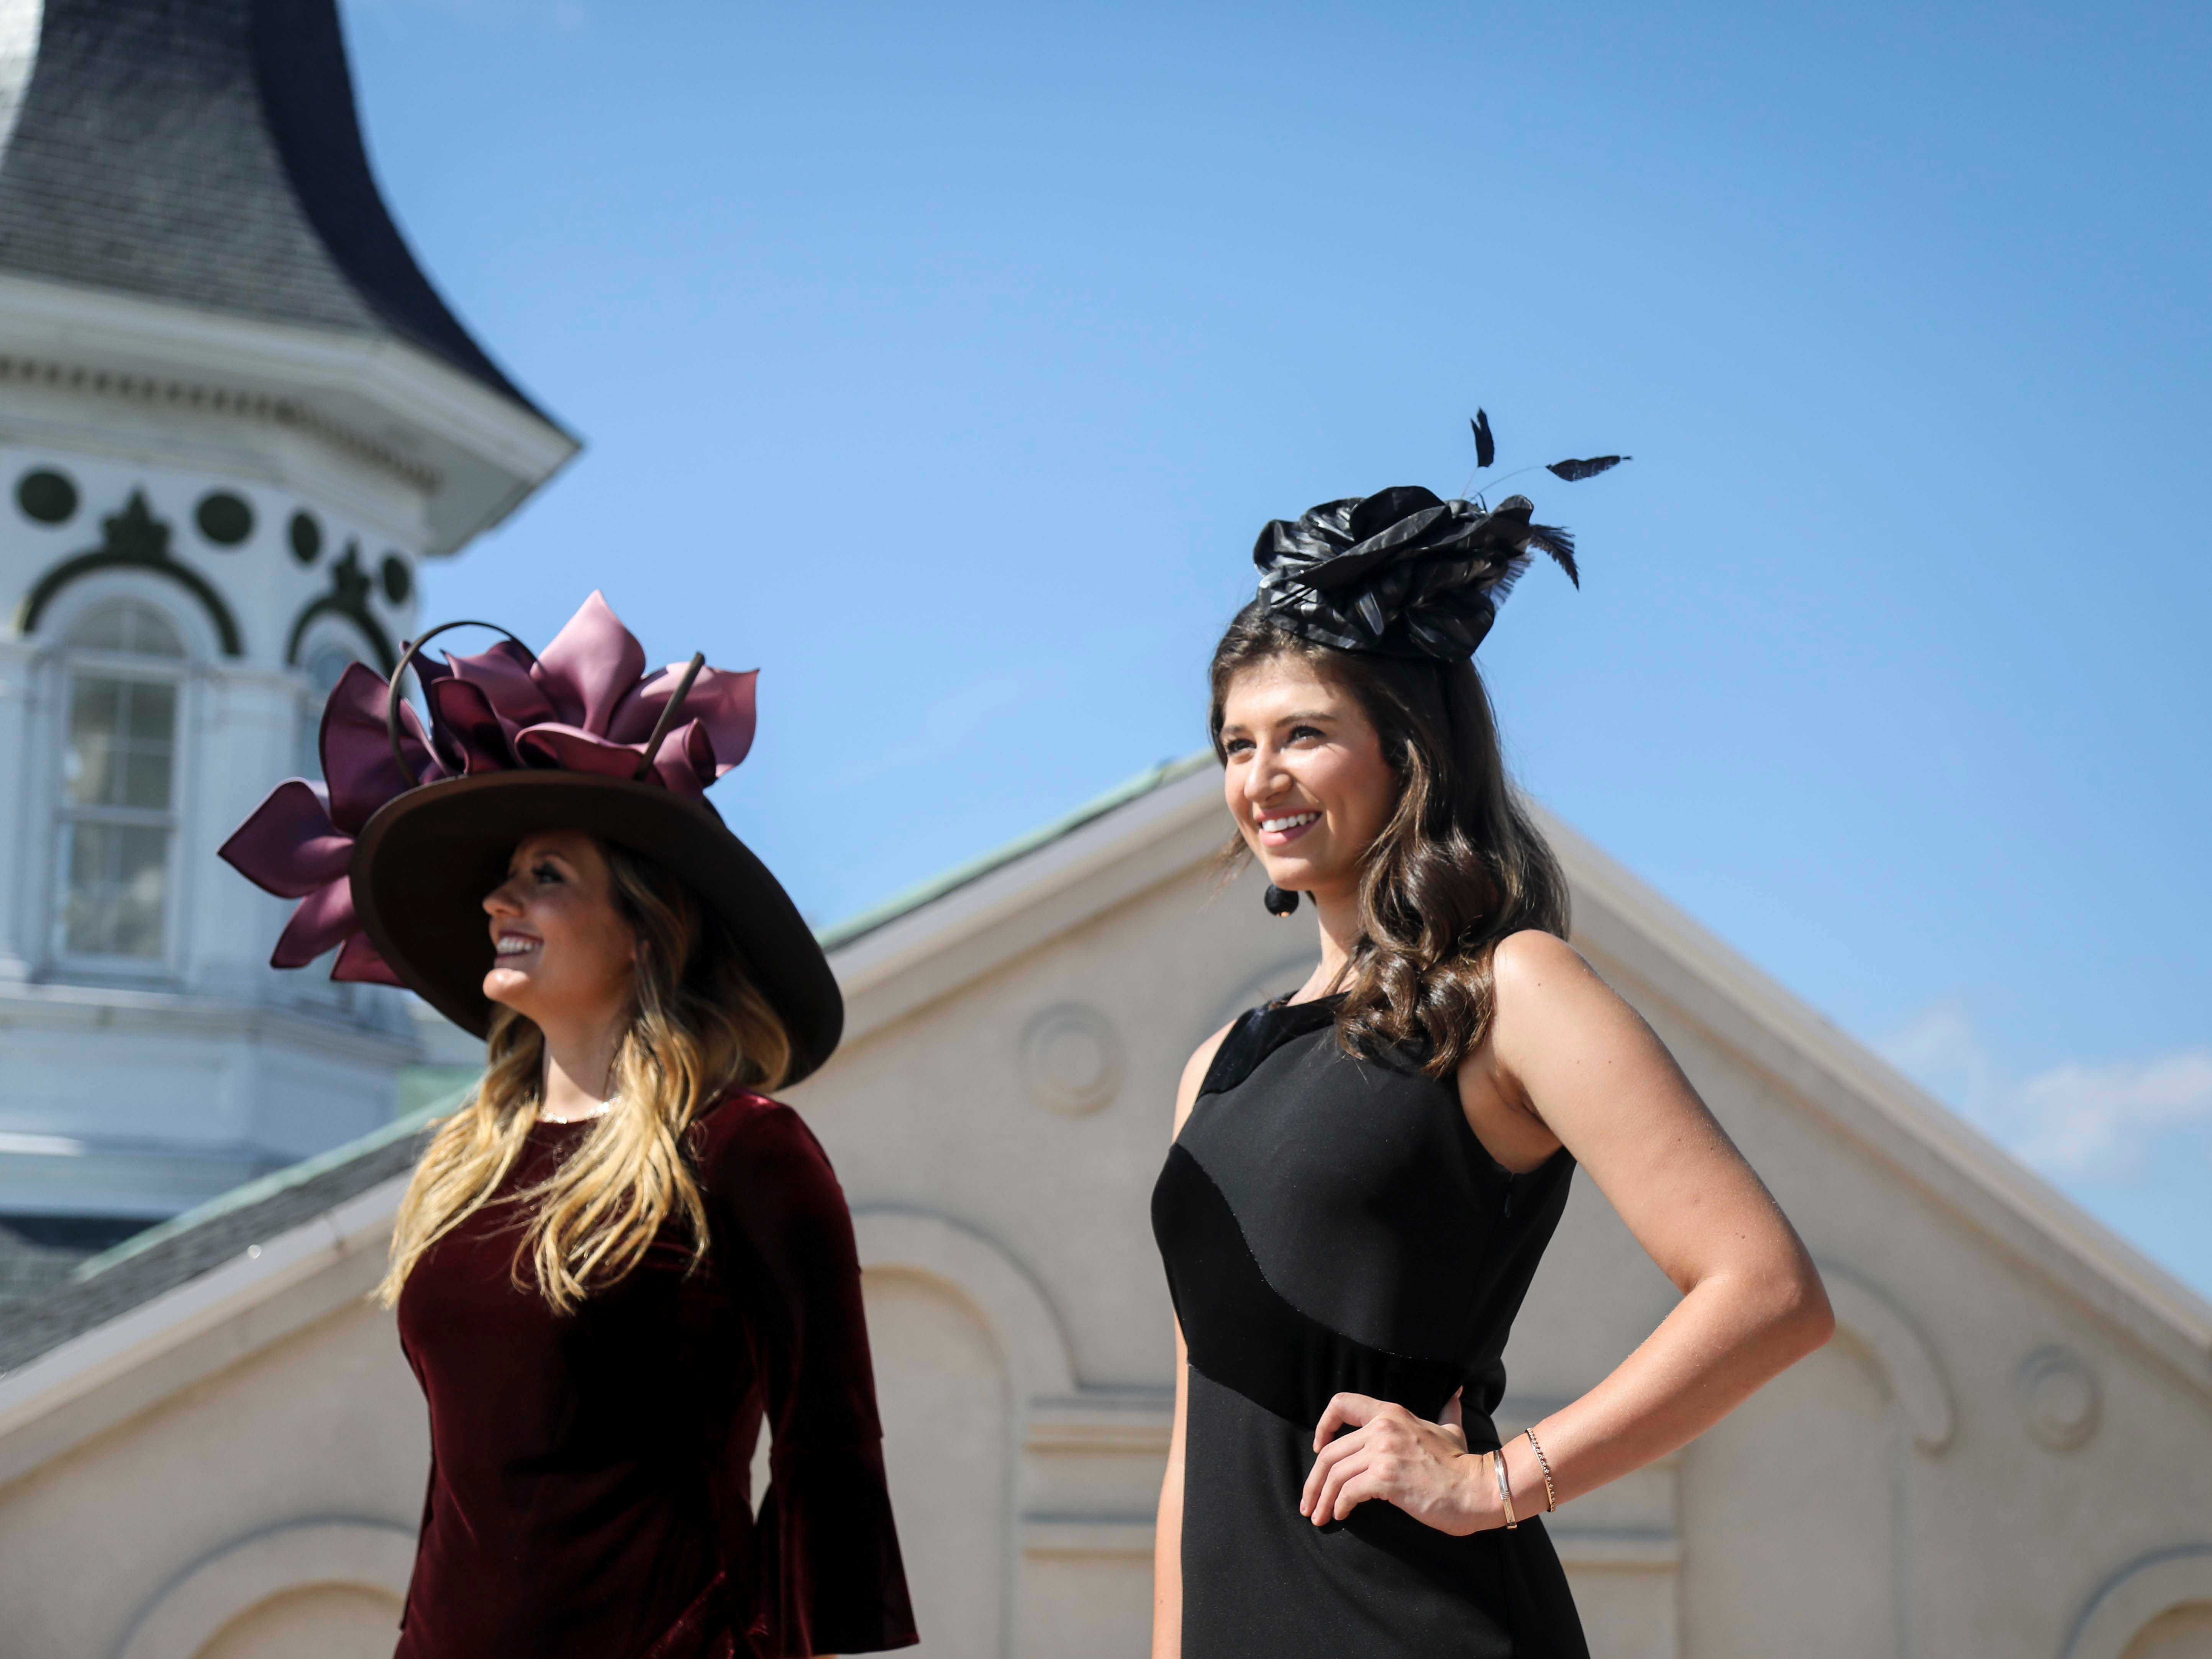 Candice Isa and Katie Bouchard model hats made by Christine Moore, track fashion expert and owner of Cam Hats, during an interview with the Courier Journal ahead of the Breeders Cup (November 3) at Churchill Downs on Wednesday, October 3, 2018.